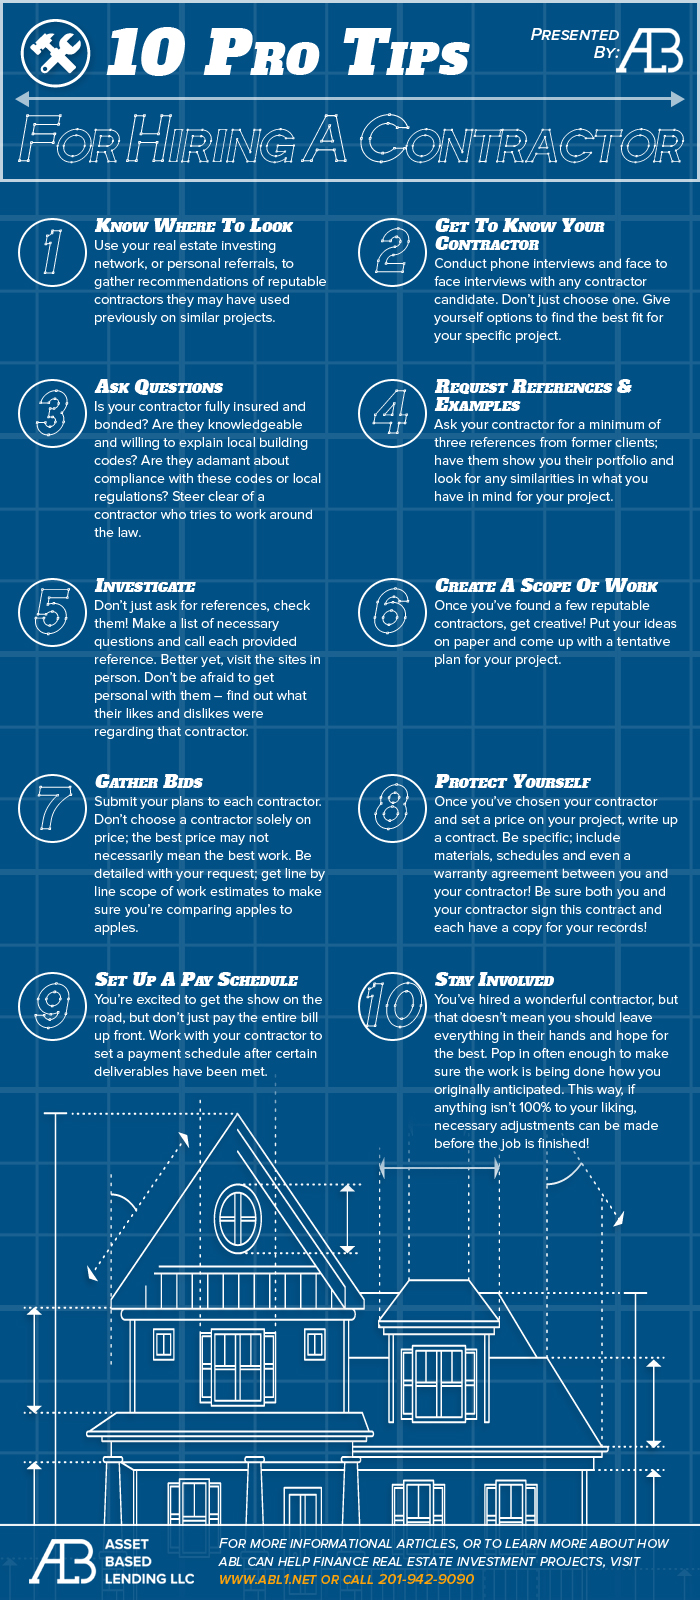 10 Pro Tips For Hiring A Contractor